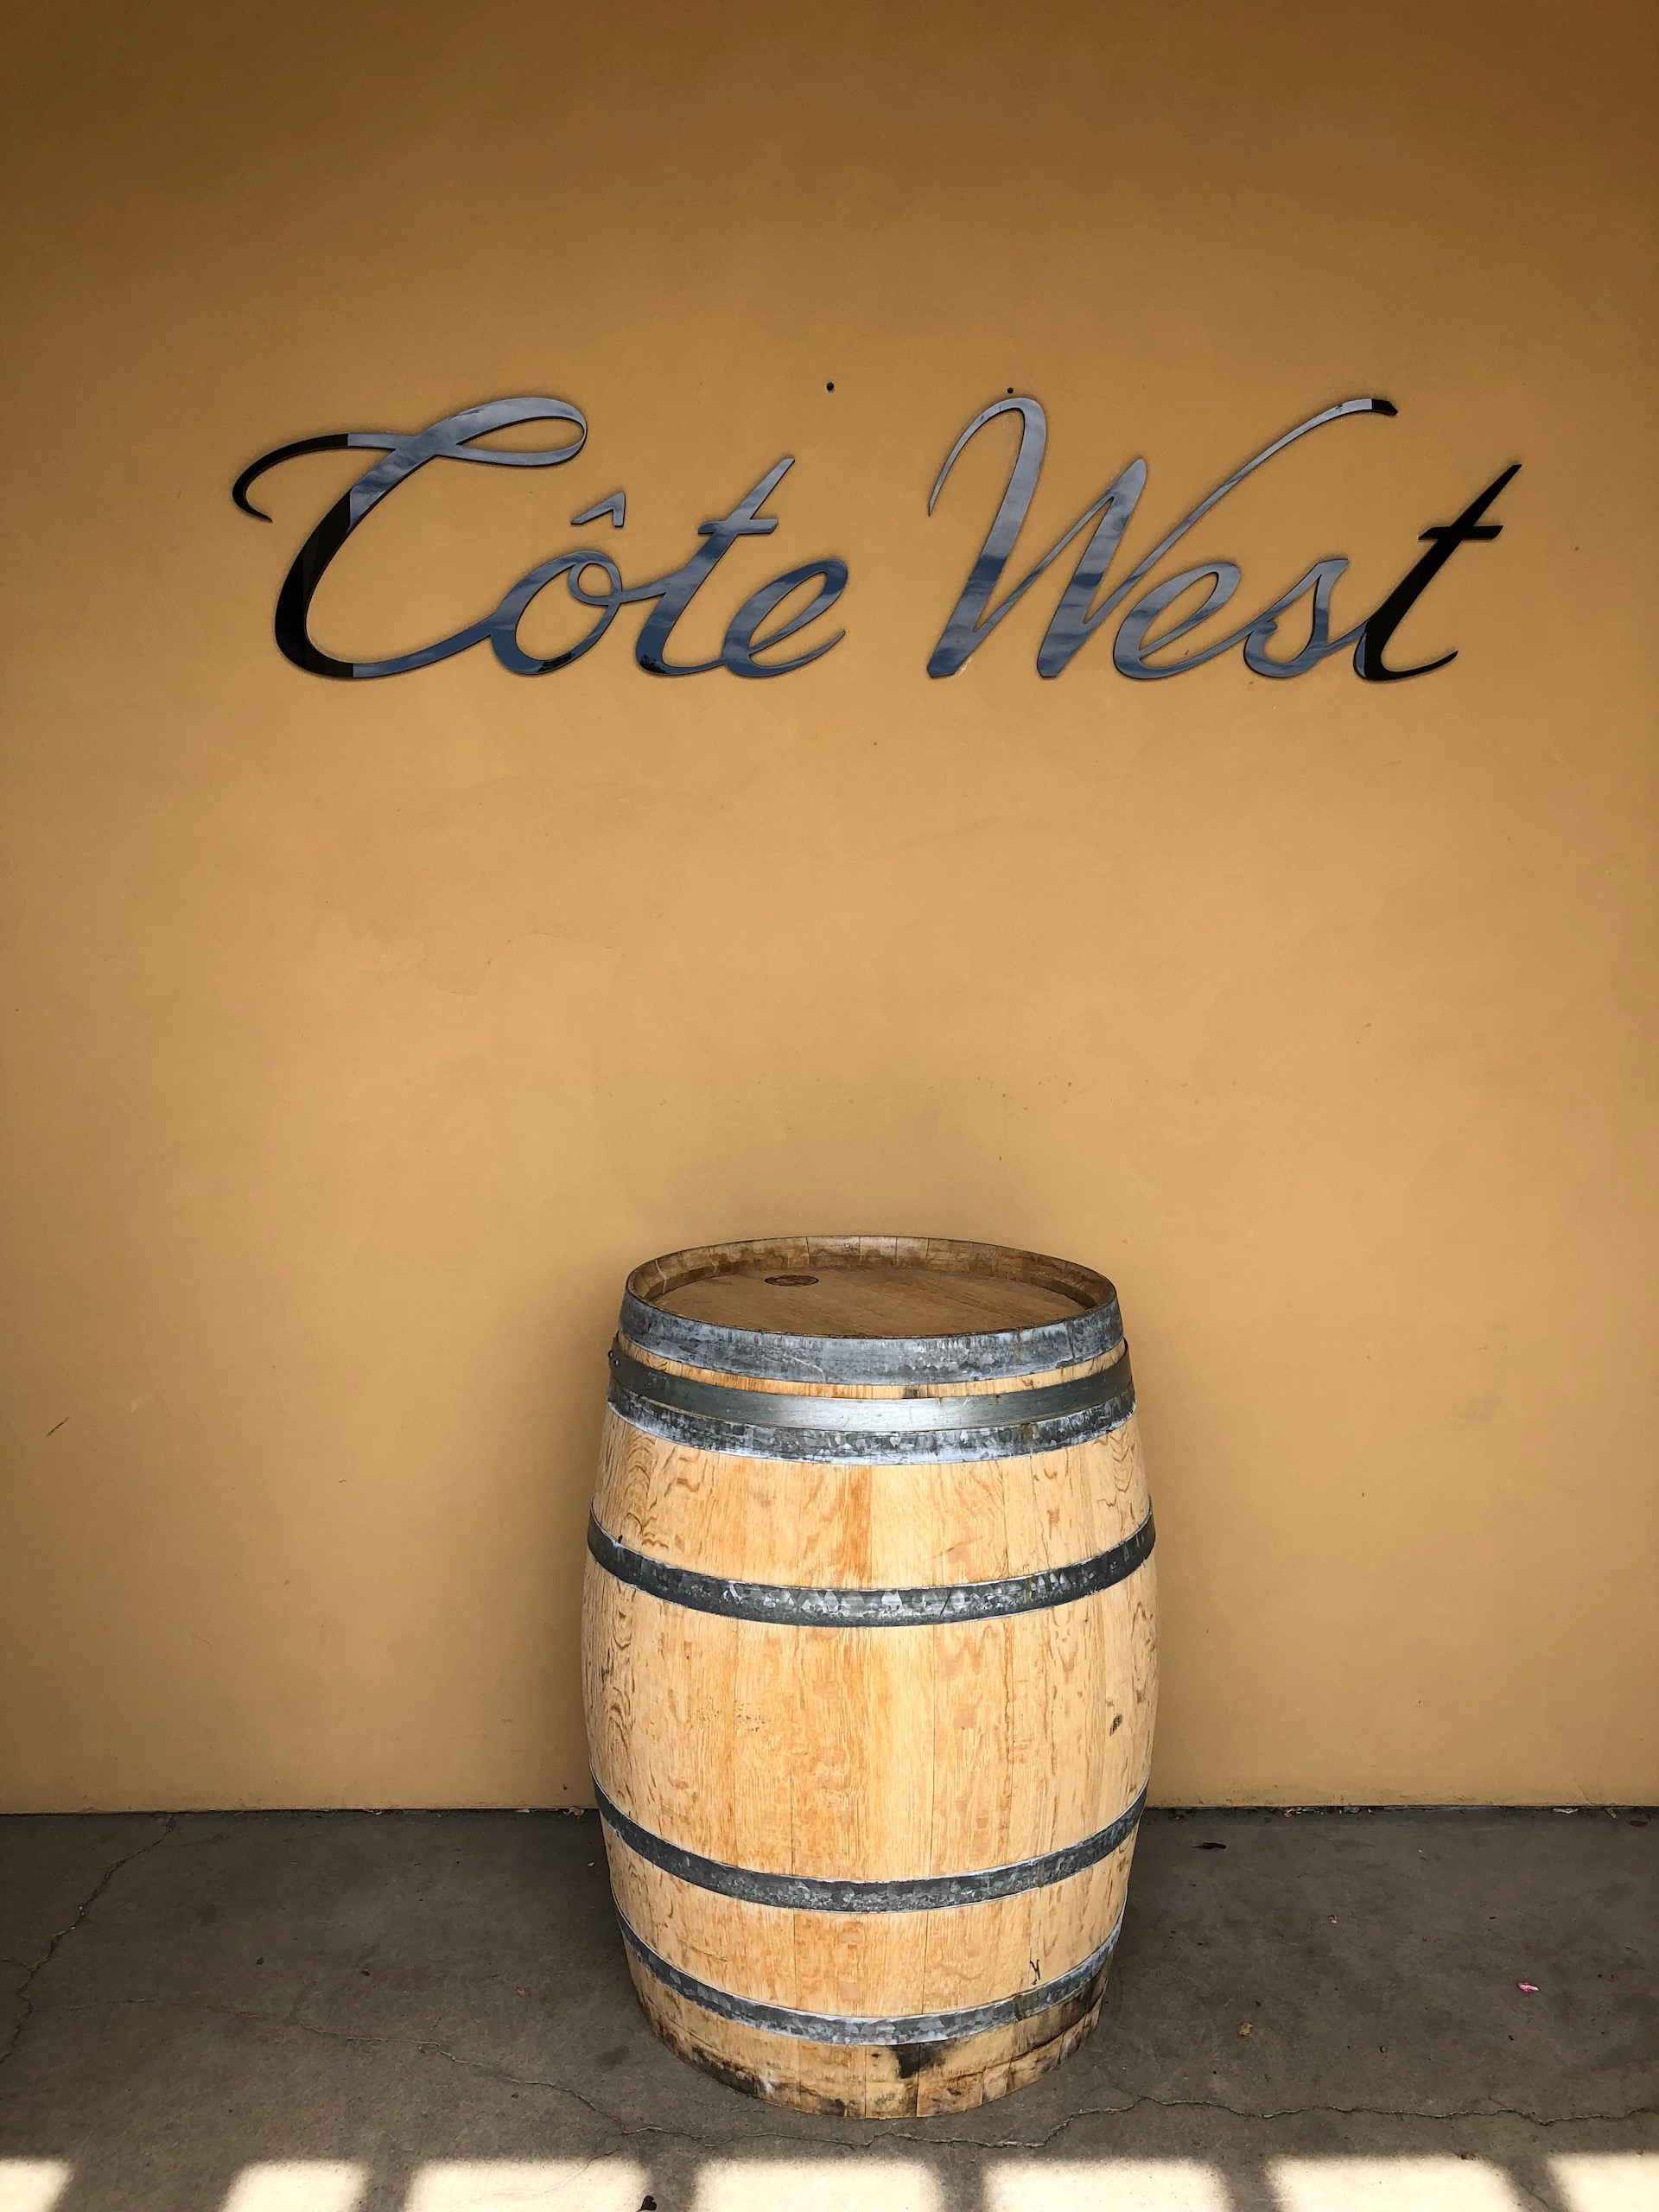 Welcome to Côte West in Oakland's Embarcadero Cove